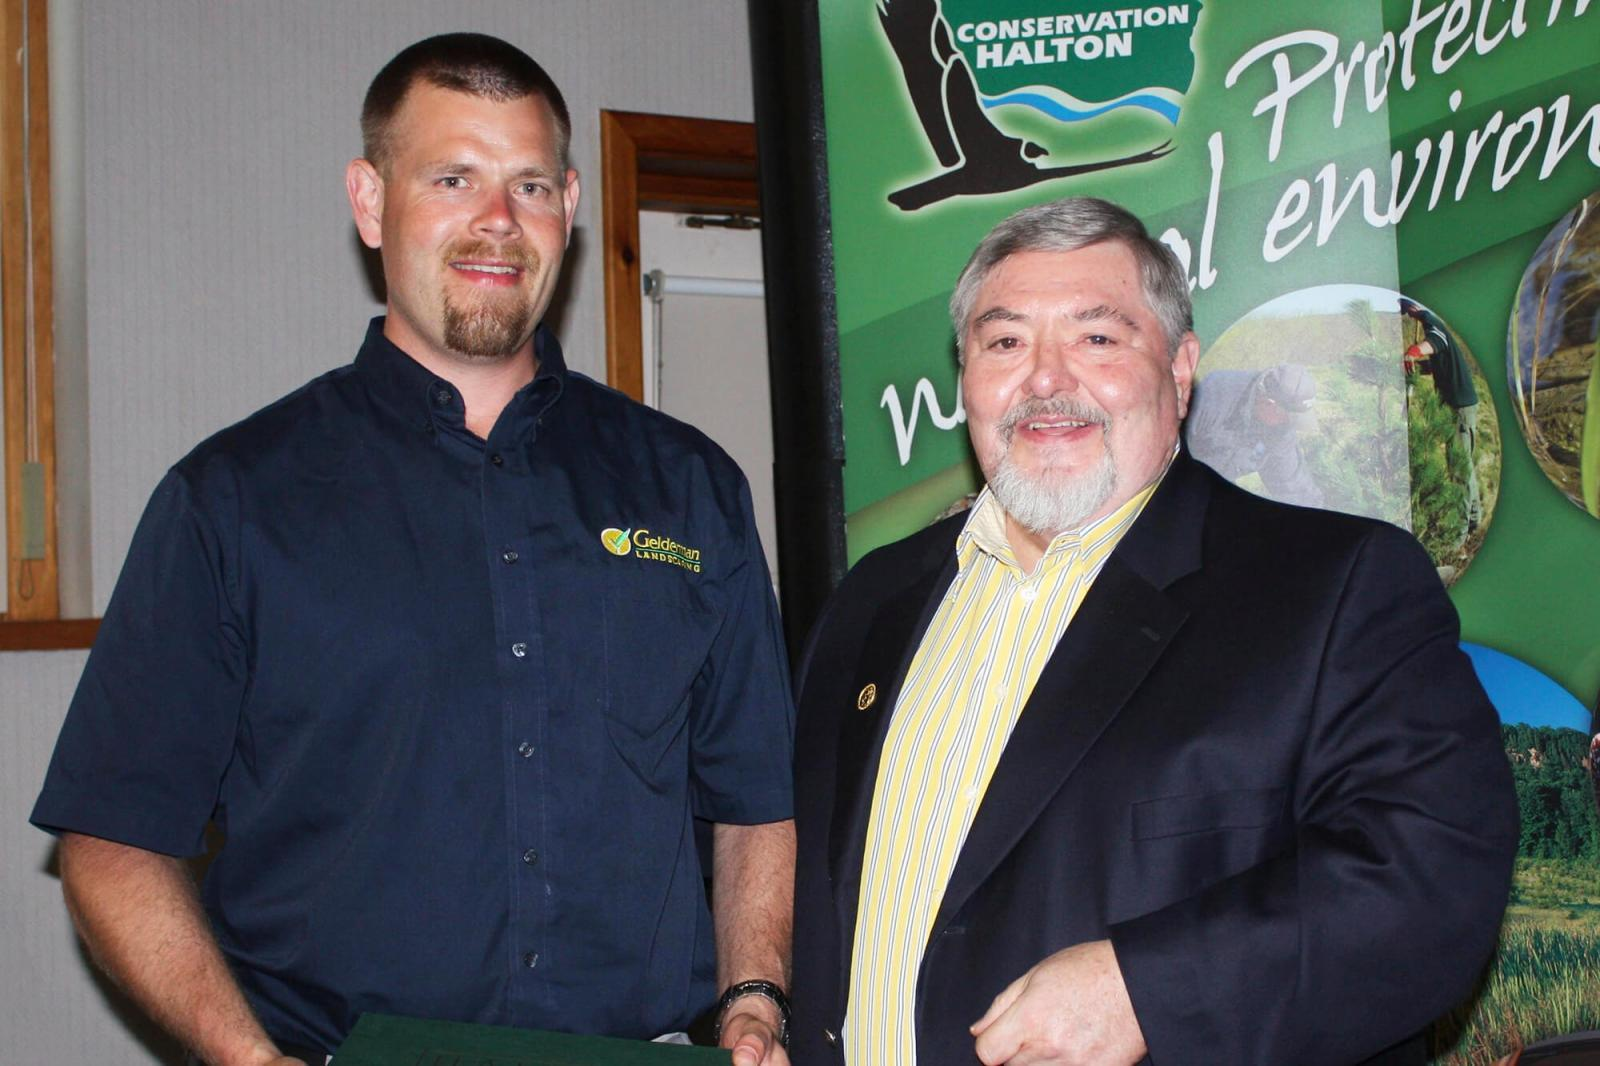 Nathan Helder, left, receives his award from Conservation Halton chair Brian Penman.